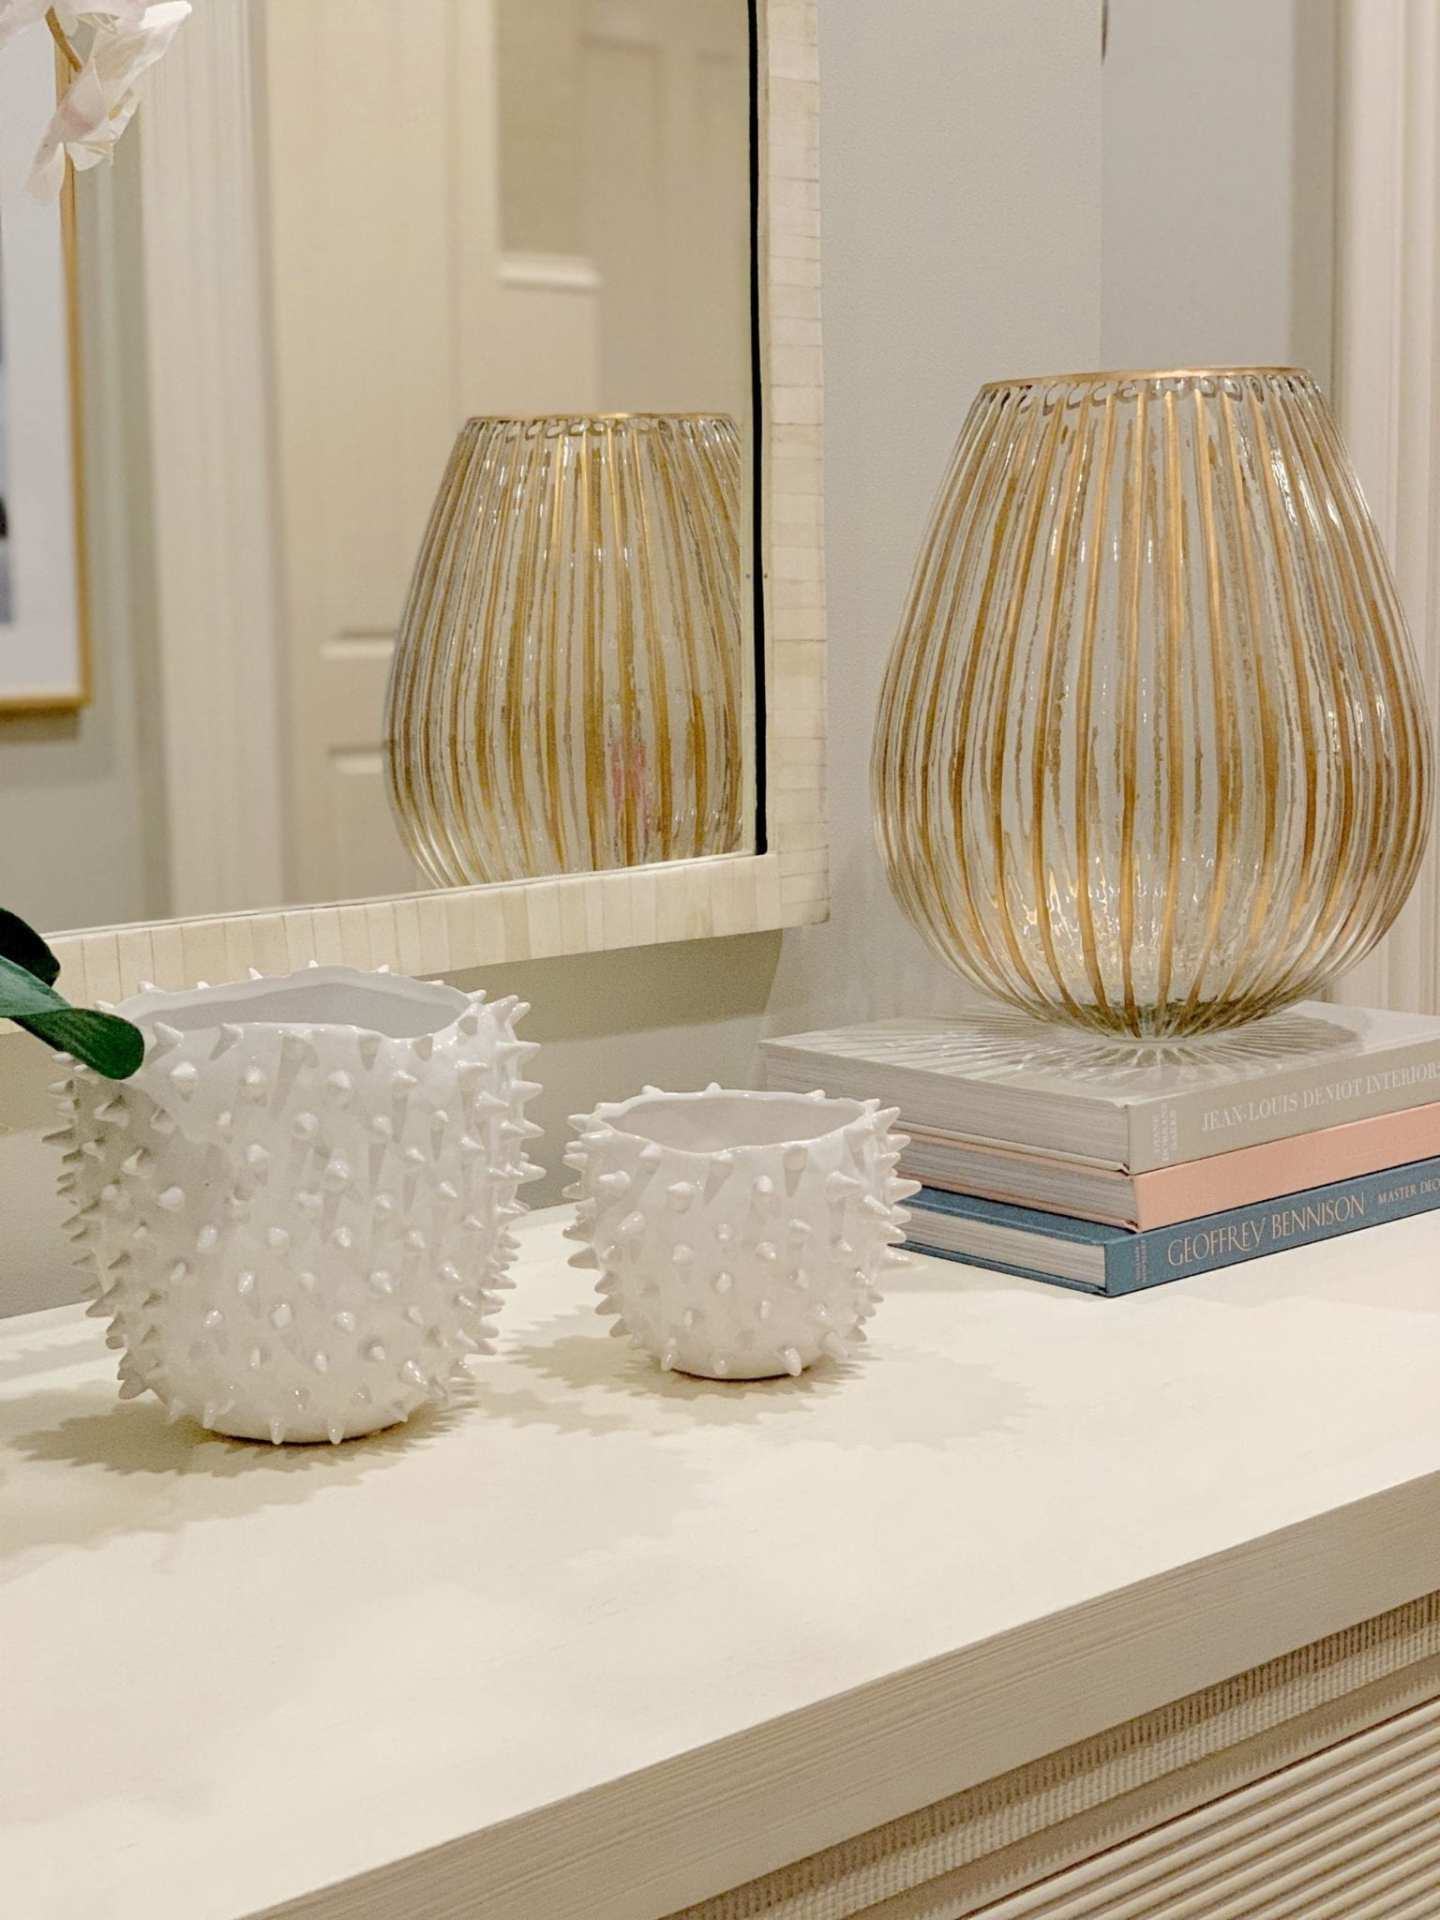 White Urchin decor and how to style a coffee table.